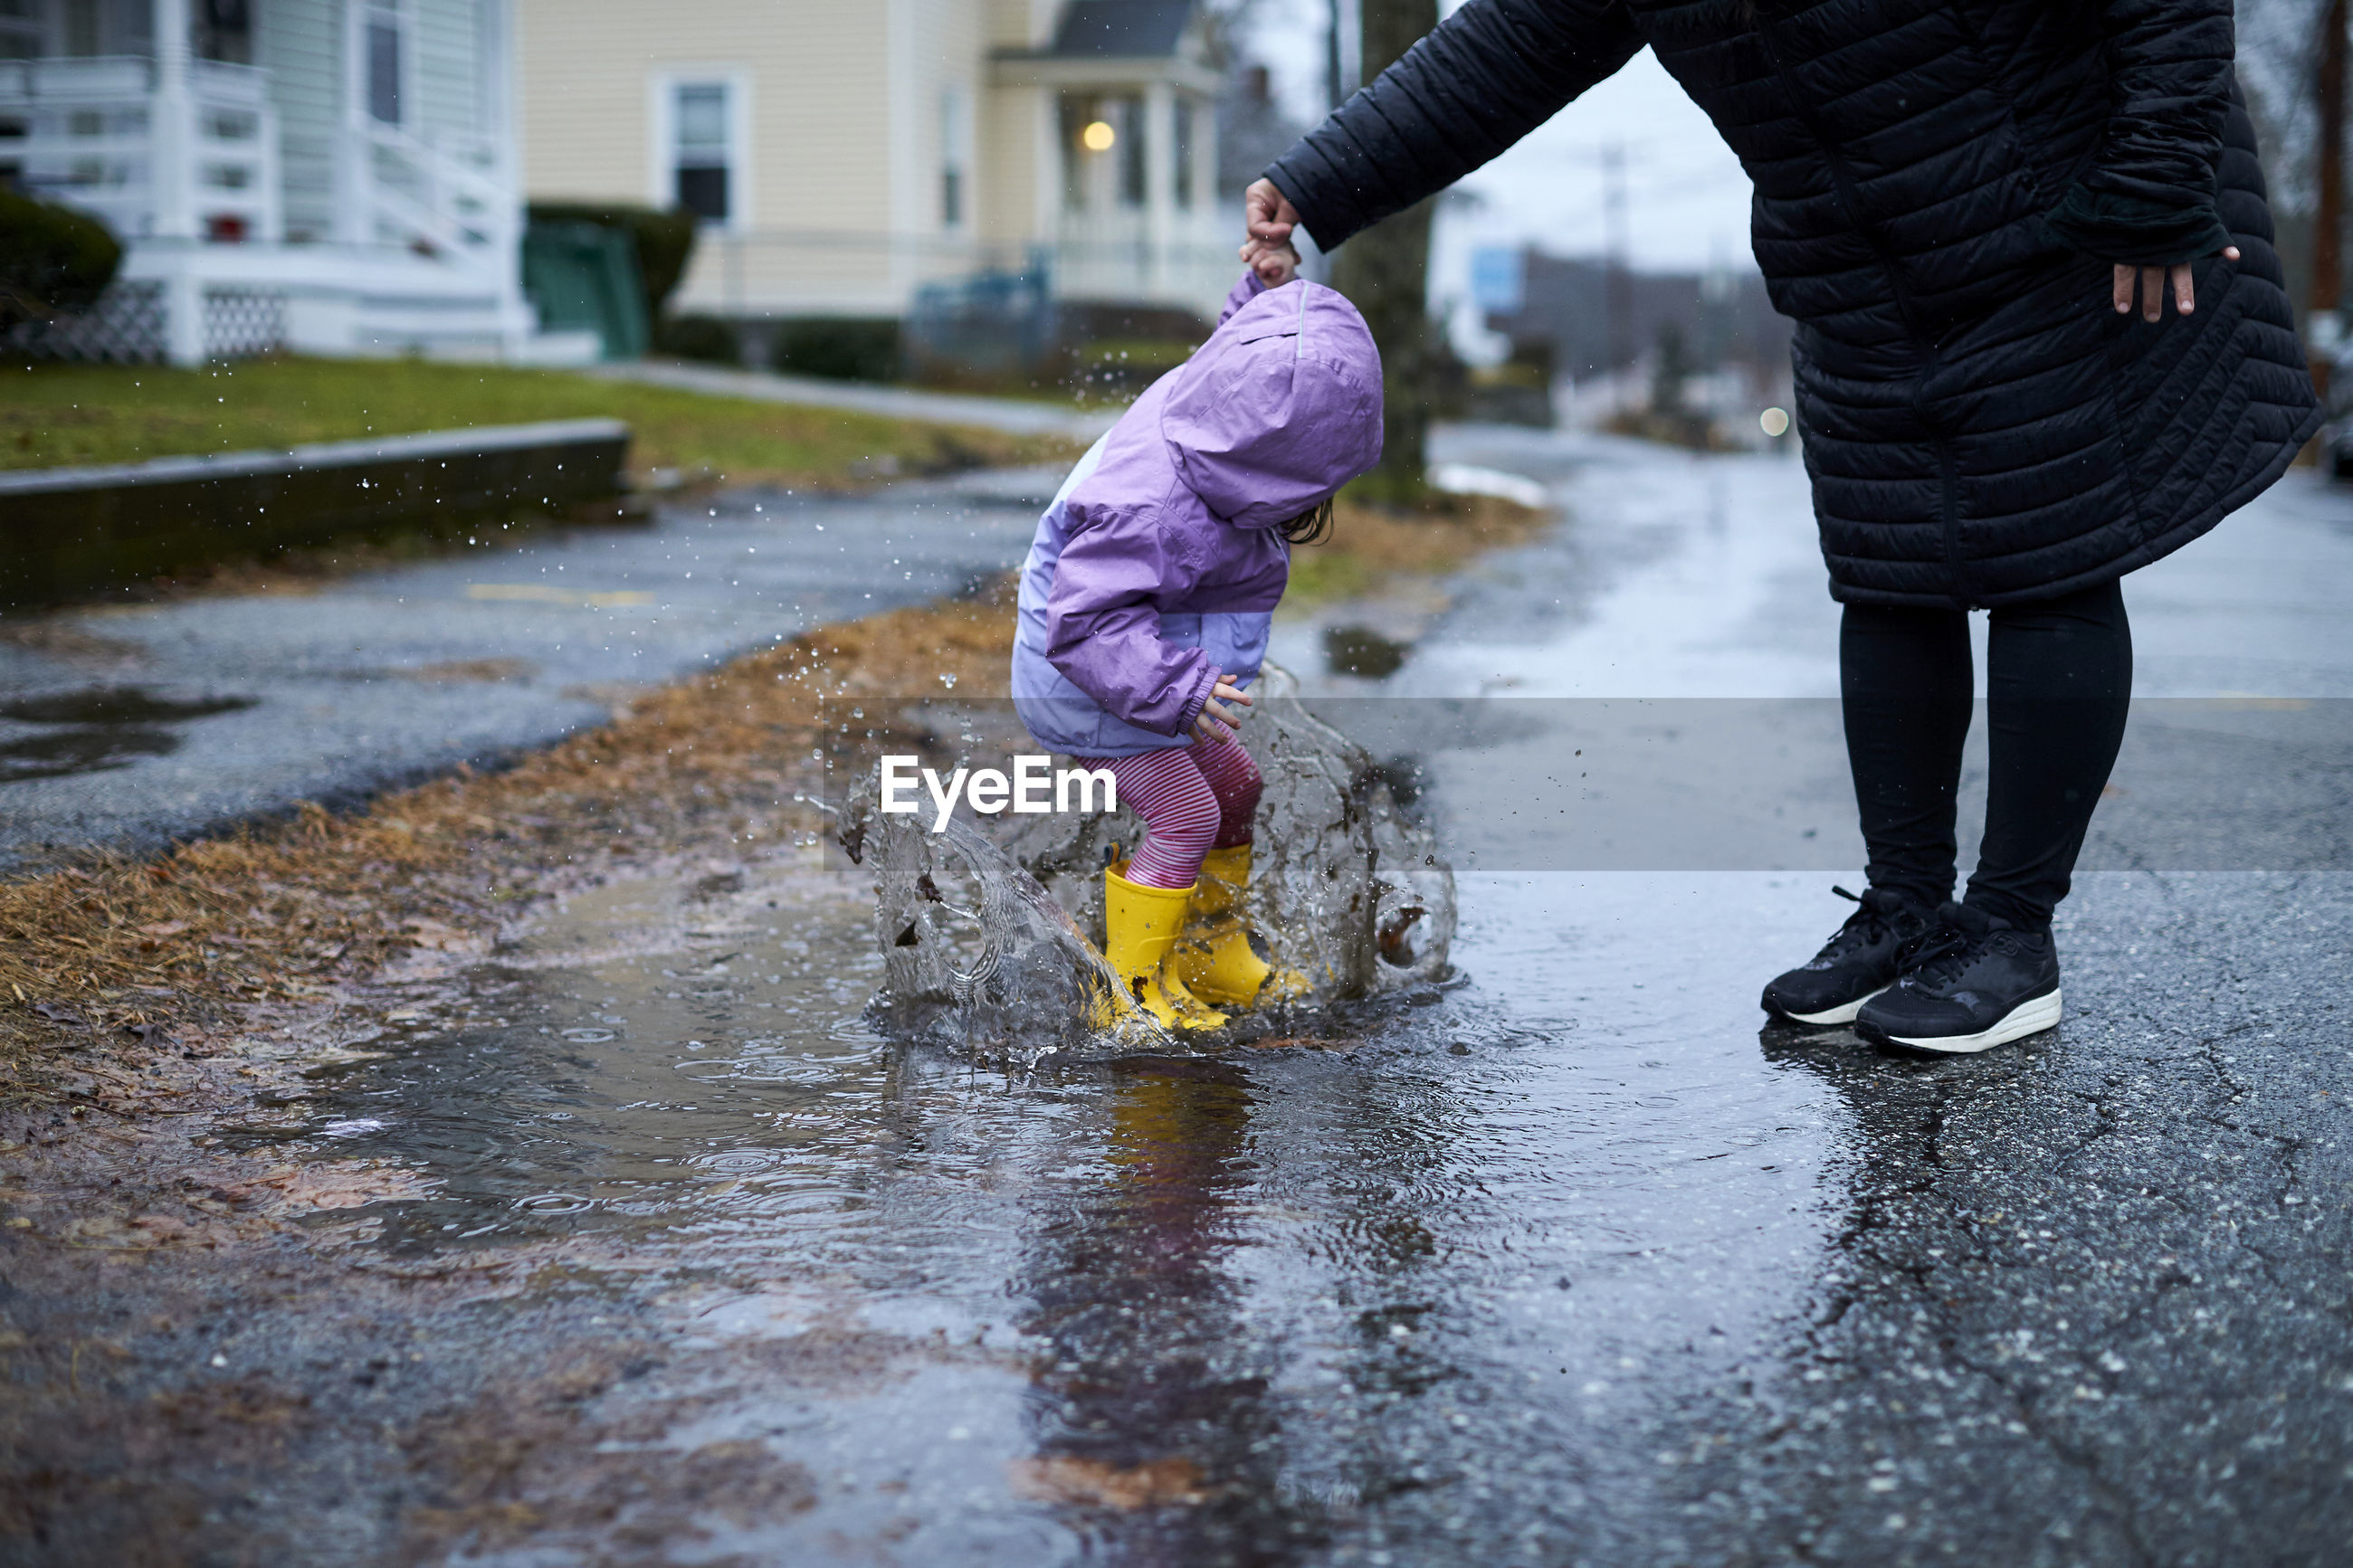 LOW SECTION OF CHILD ON PUDDLE IN RAIN